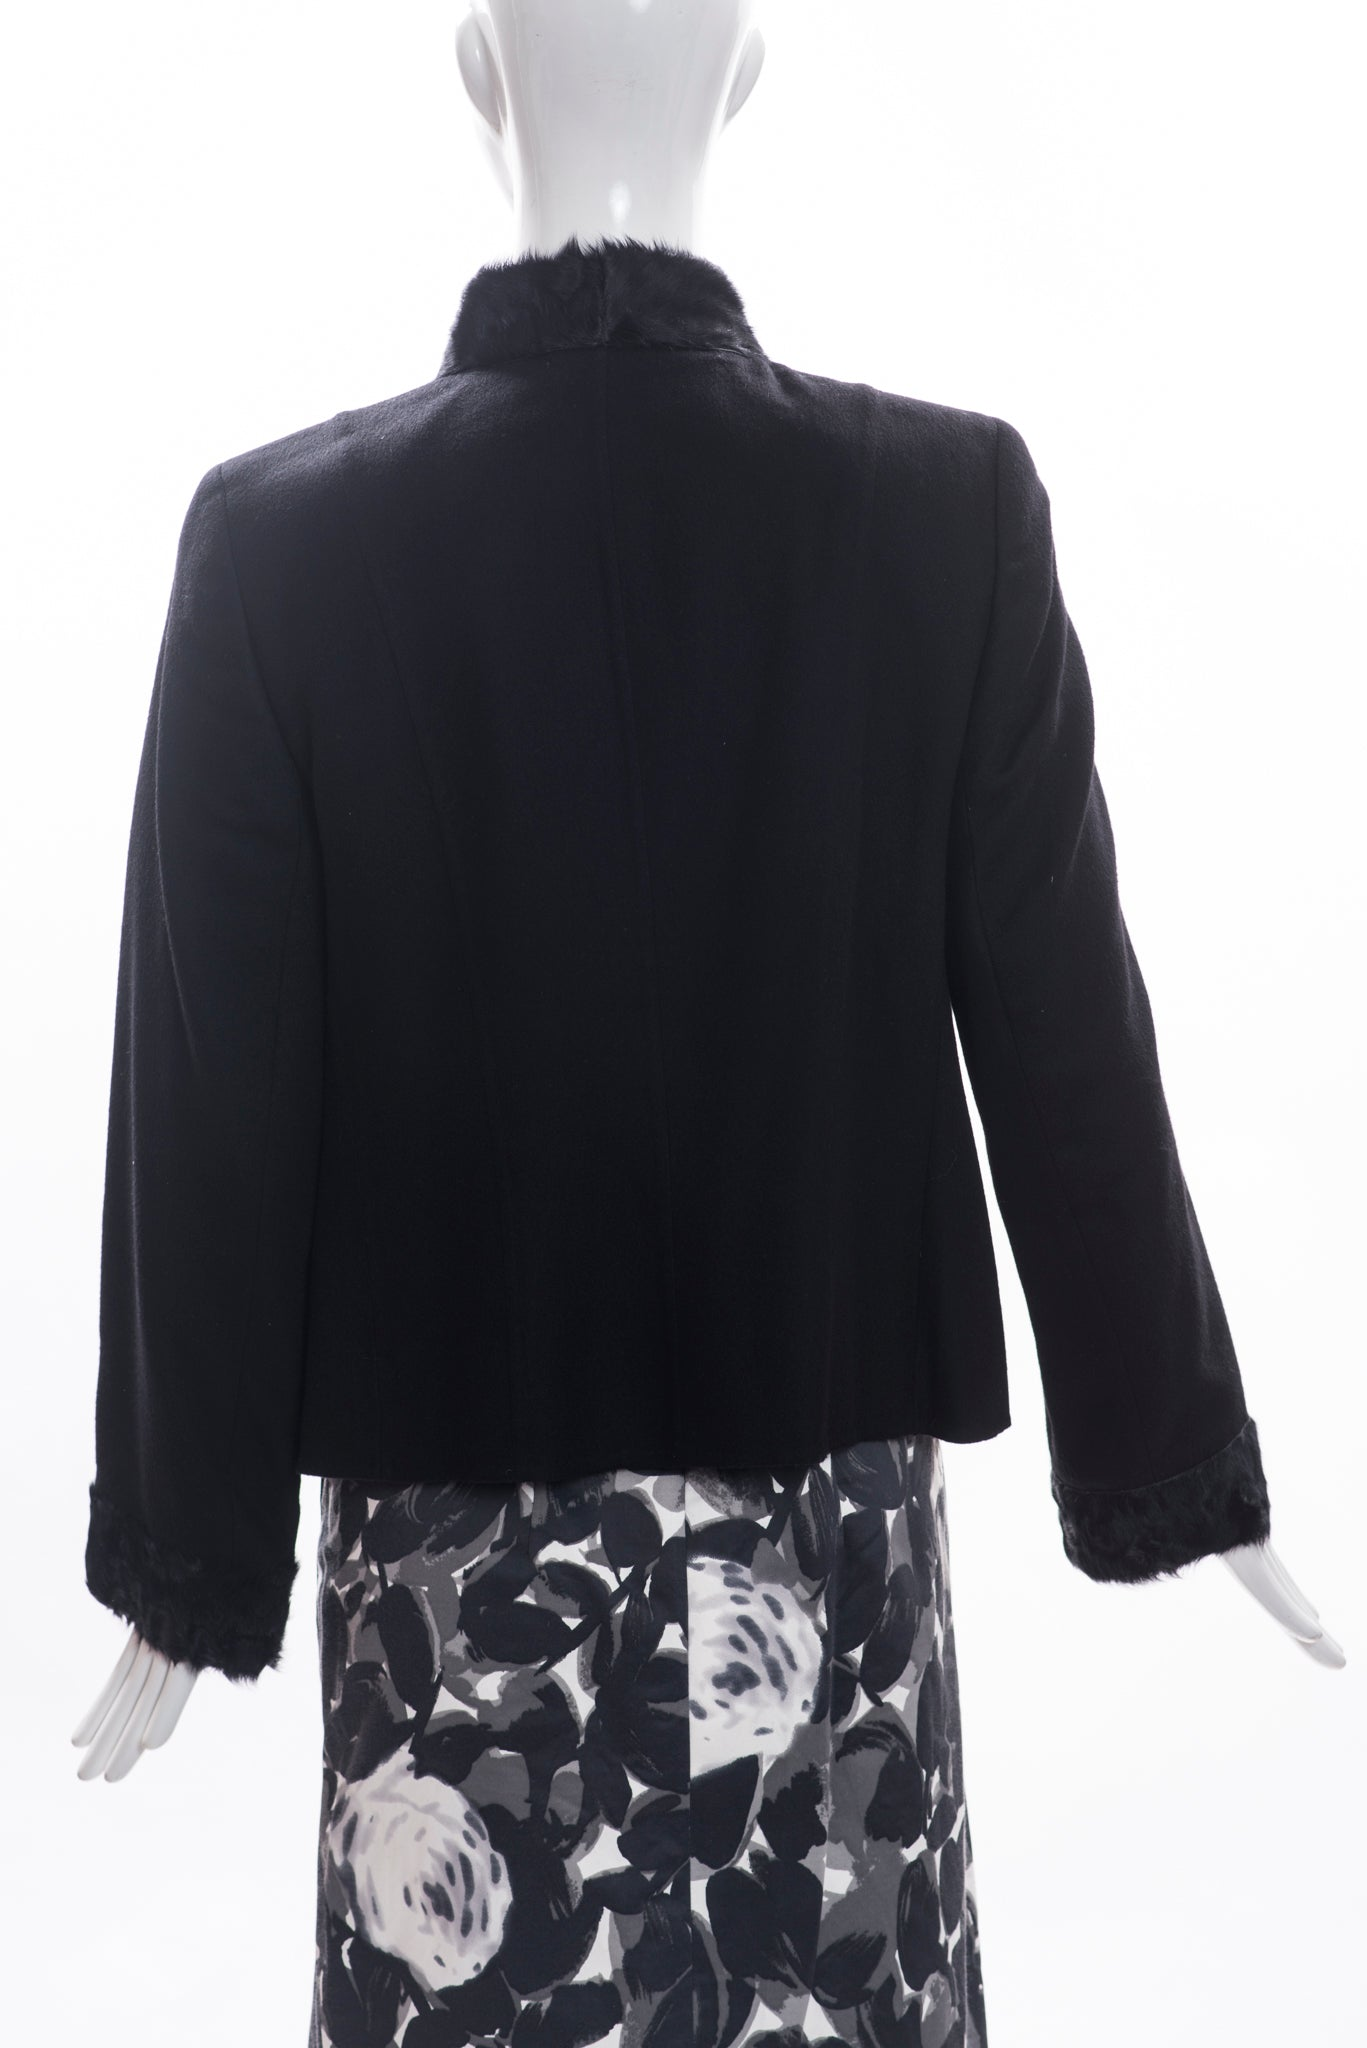 AKRIS Bergdorf Black Cashmere Lamb Goat Fur Trim Fitted Blazer Jacket FR 44 12